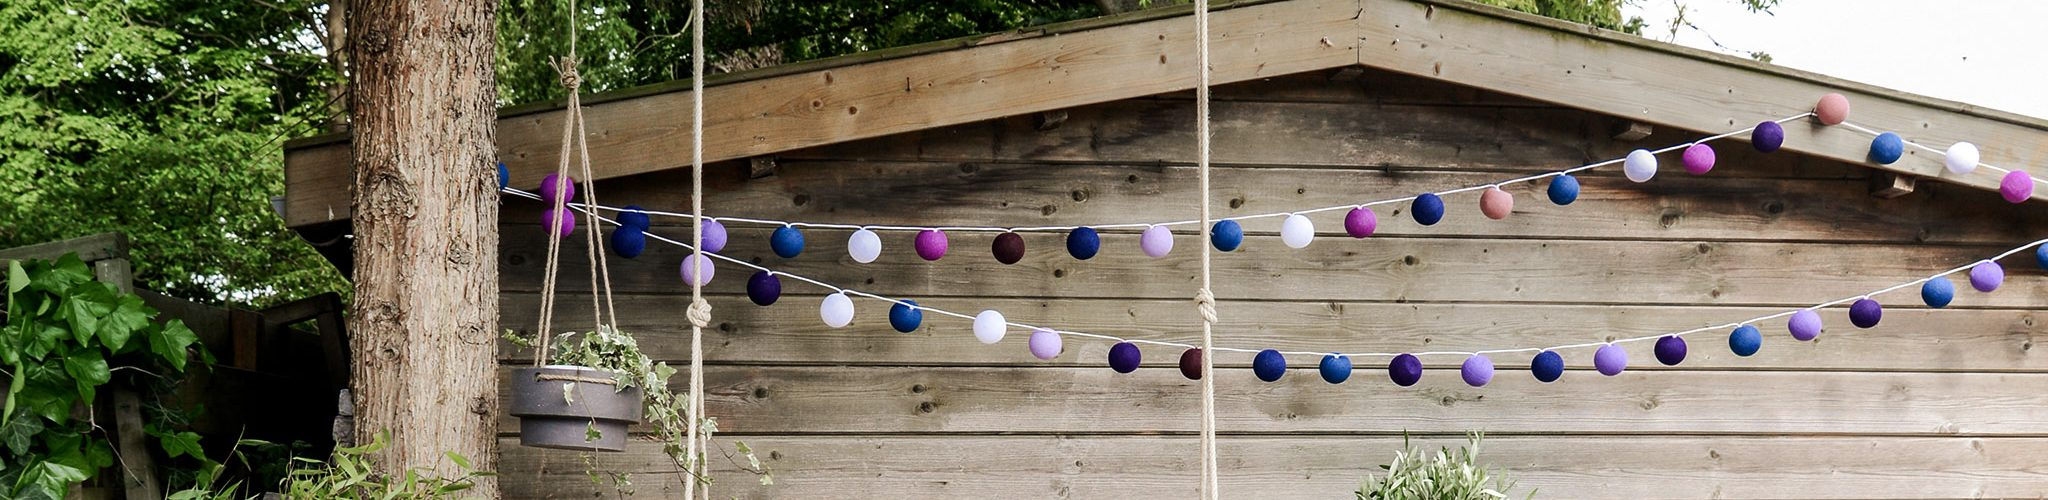 Summer party: 5 x de leukste feestverlichting